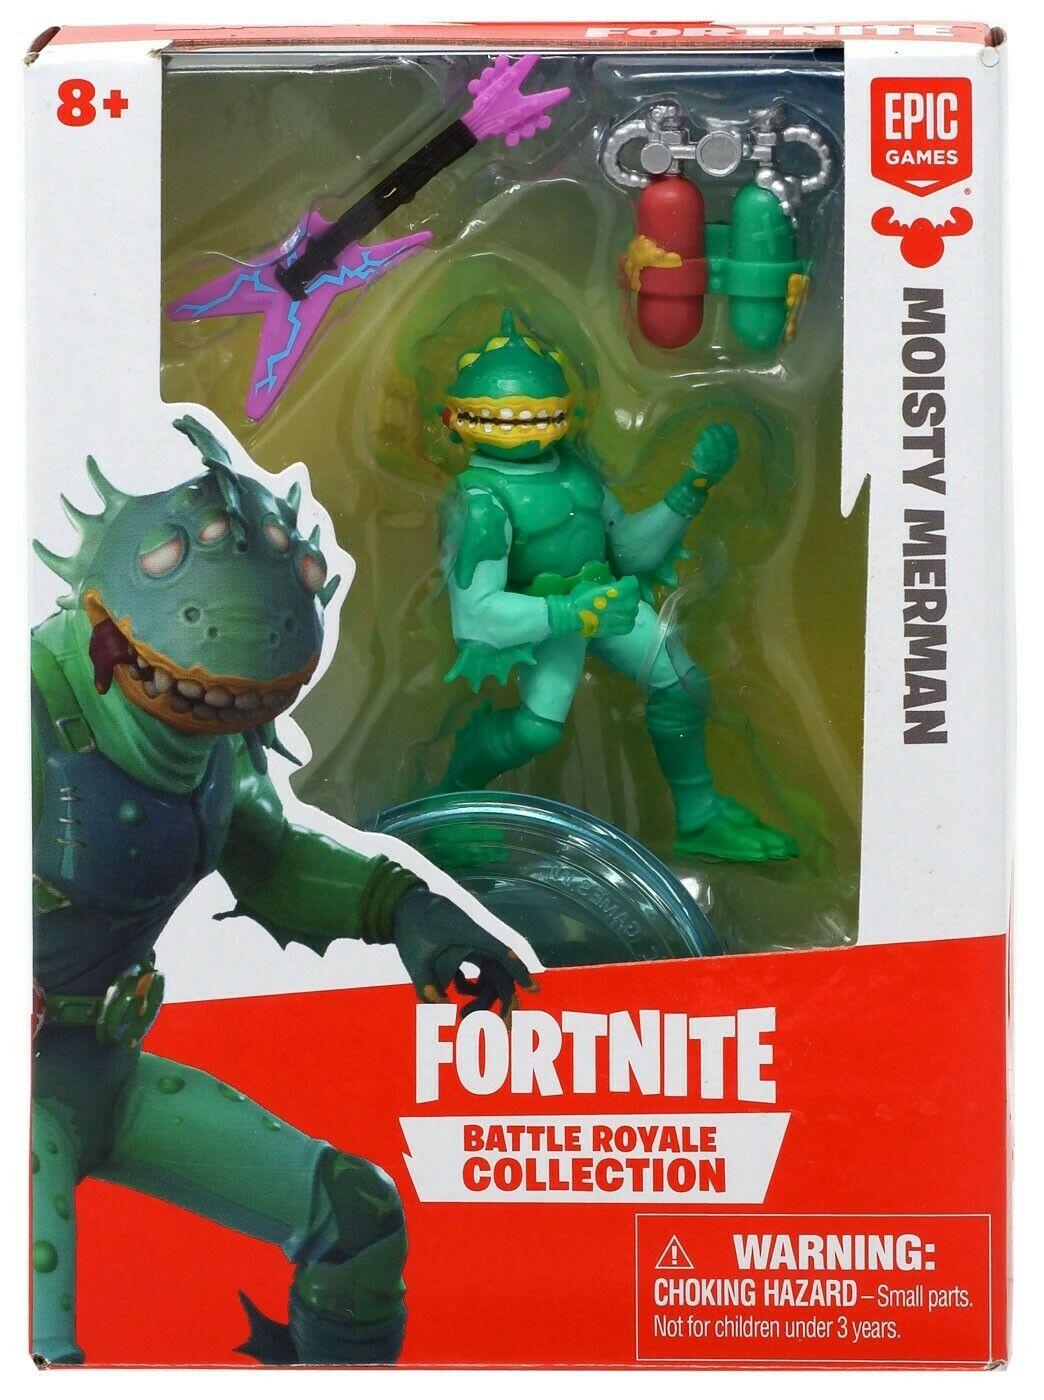 Fortnite Mini Figura Moisty Merman Battle Royale Collection - Original